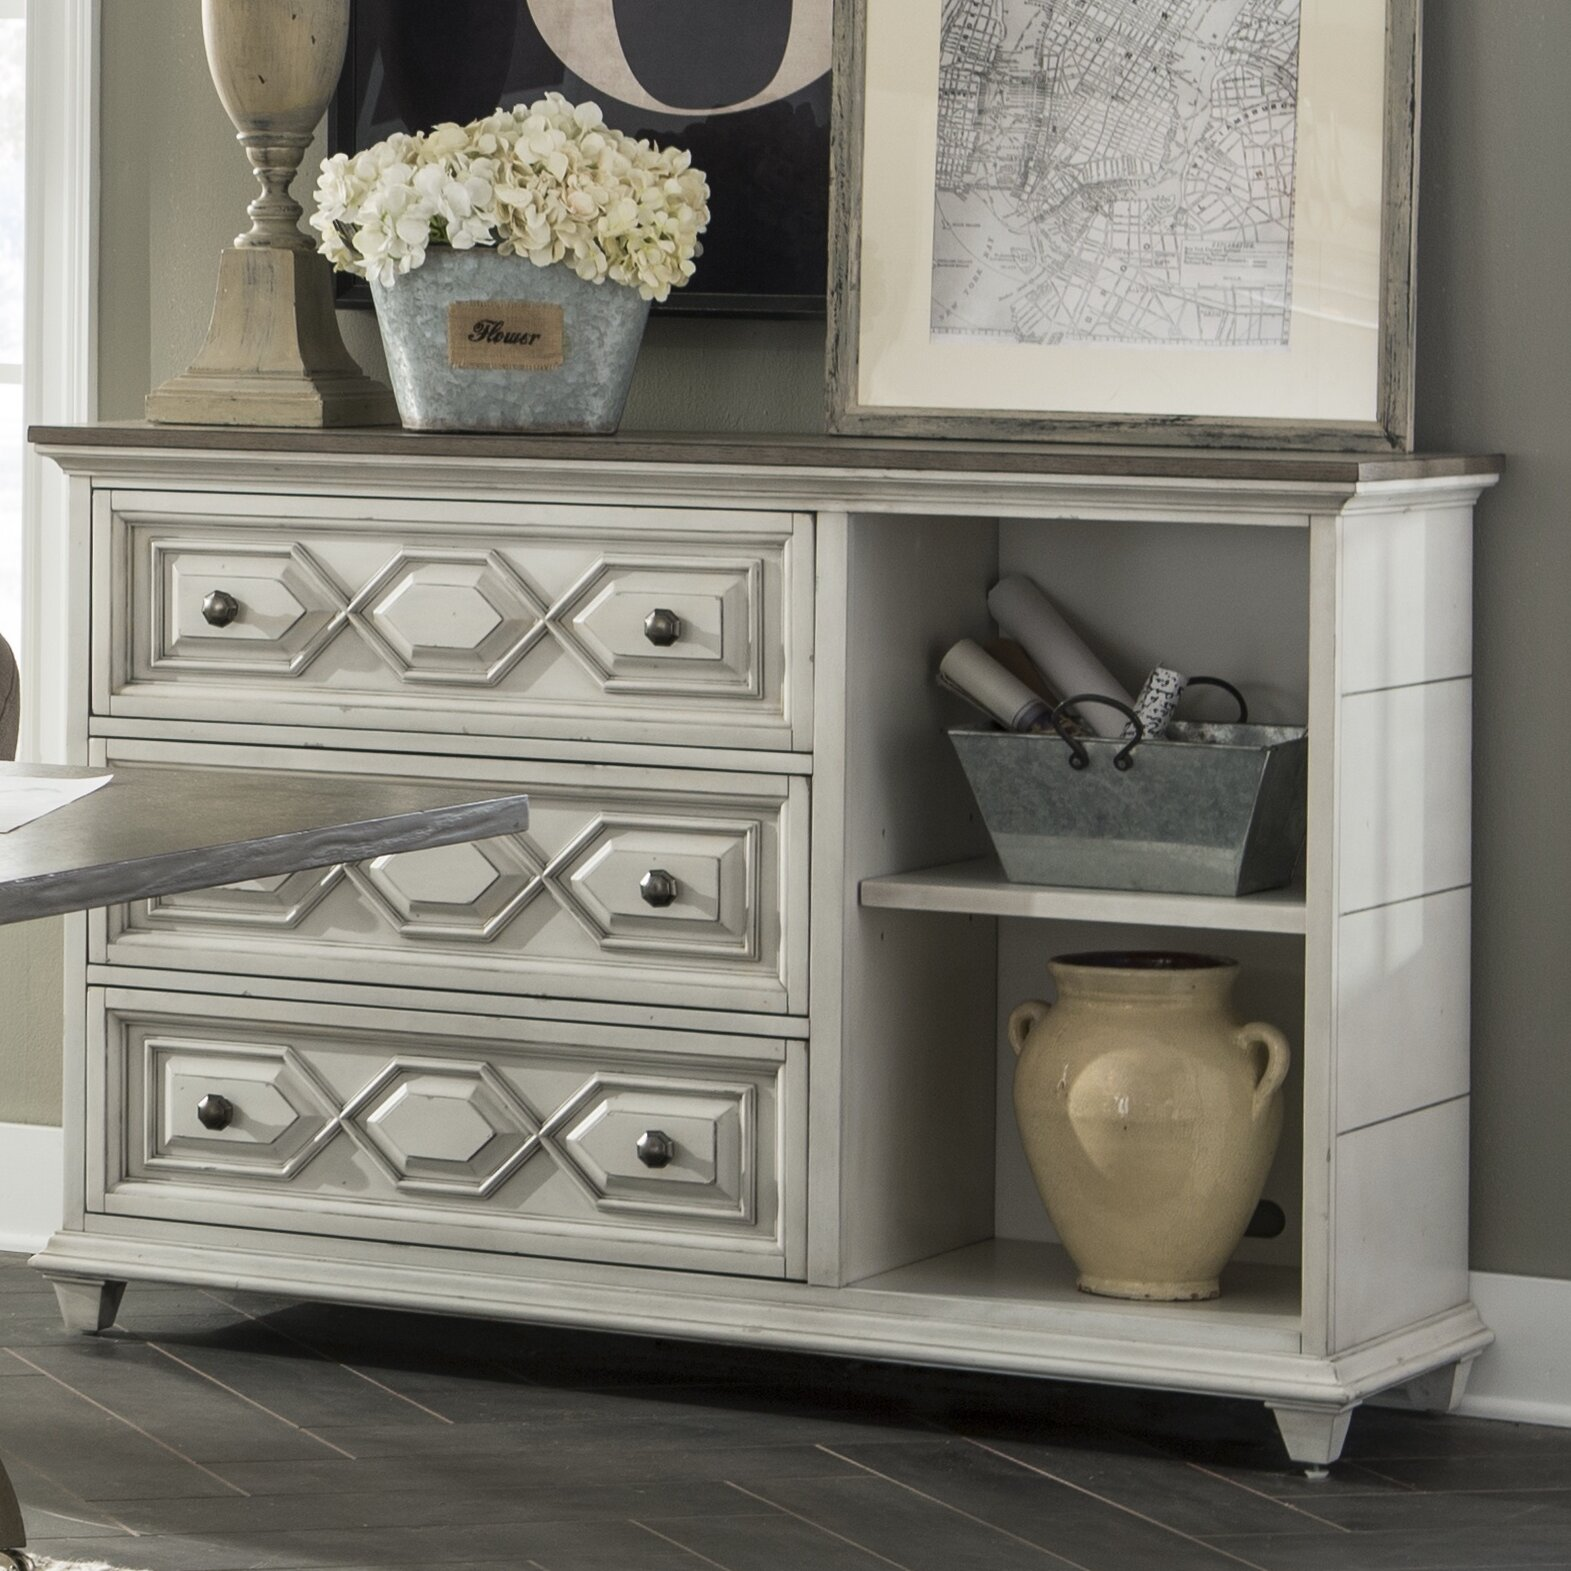 6 Drawer Lateral File Cabinet Darby Home Co Wilburn 3 Drawer Lateral Filing Cabinet Wayfair